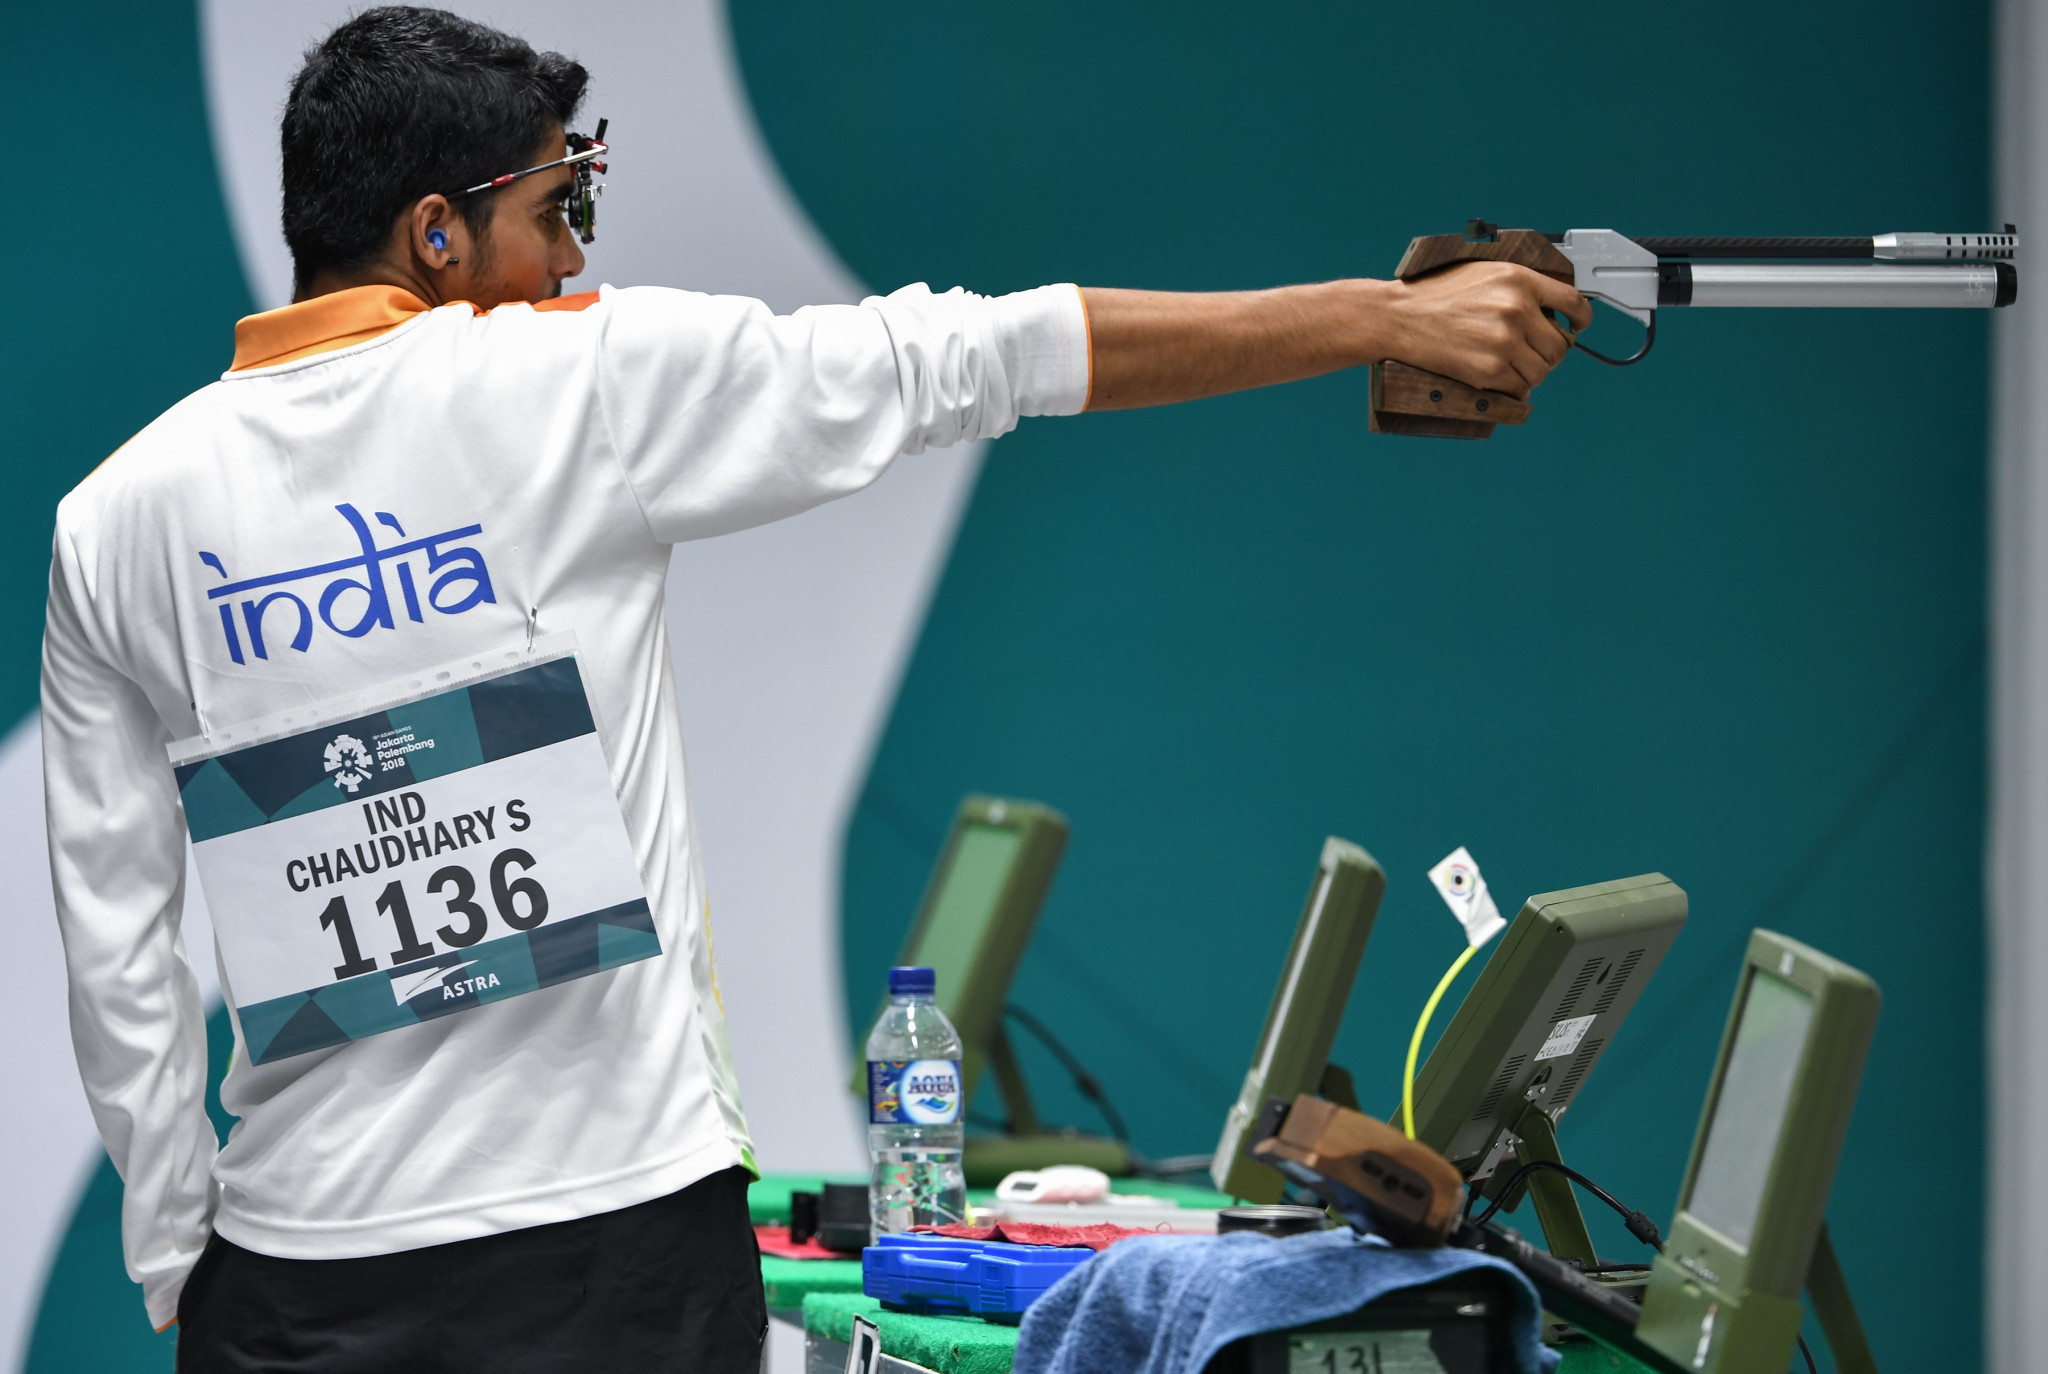 Deswal victorious at New Delhi ISSF World Cup but COVID-19 cases increase